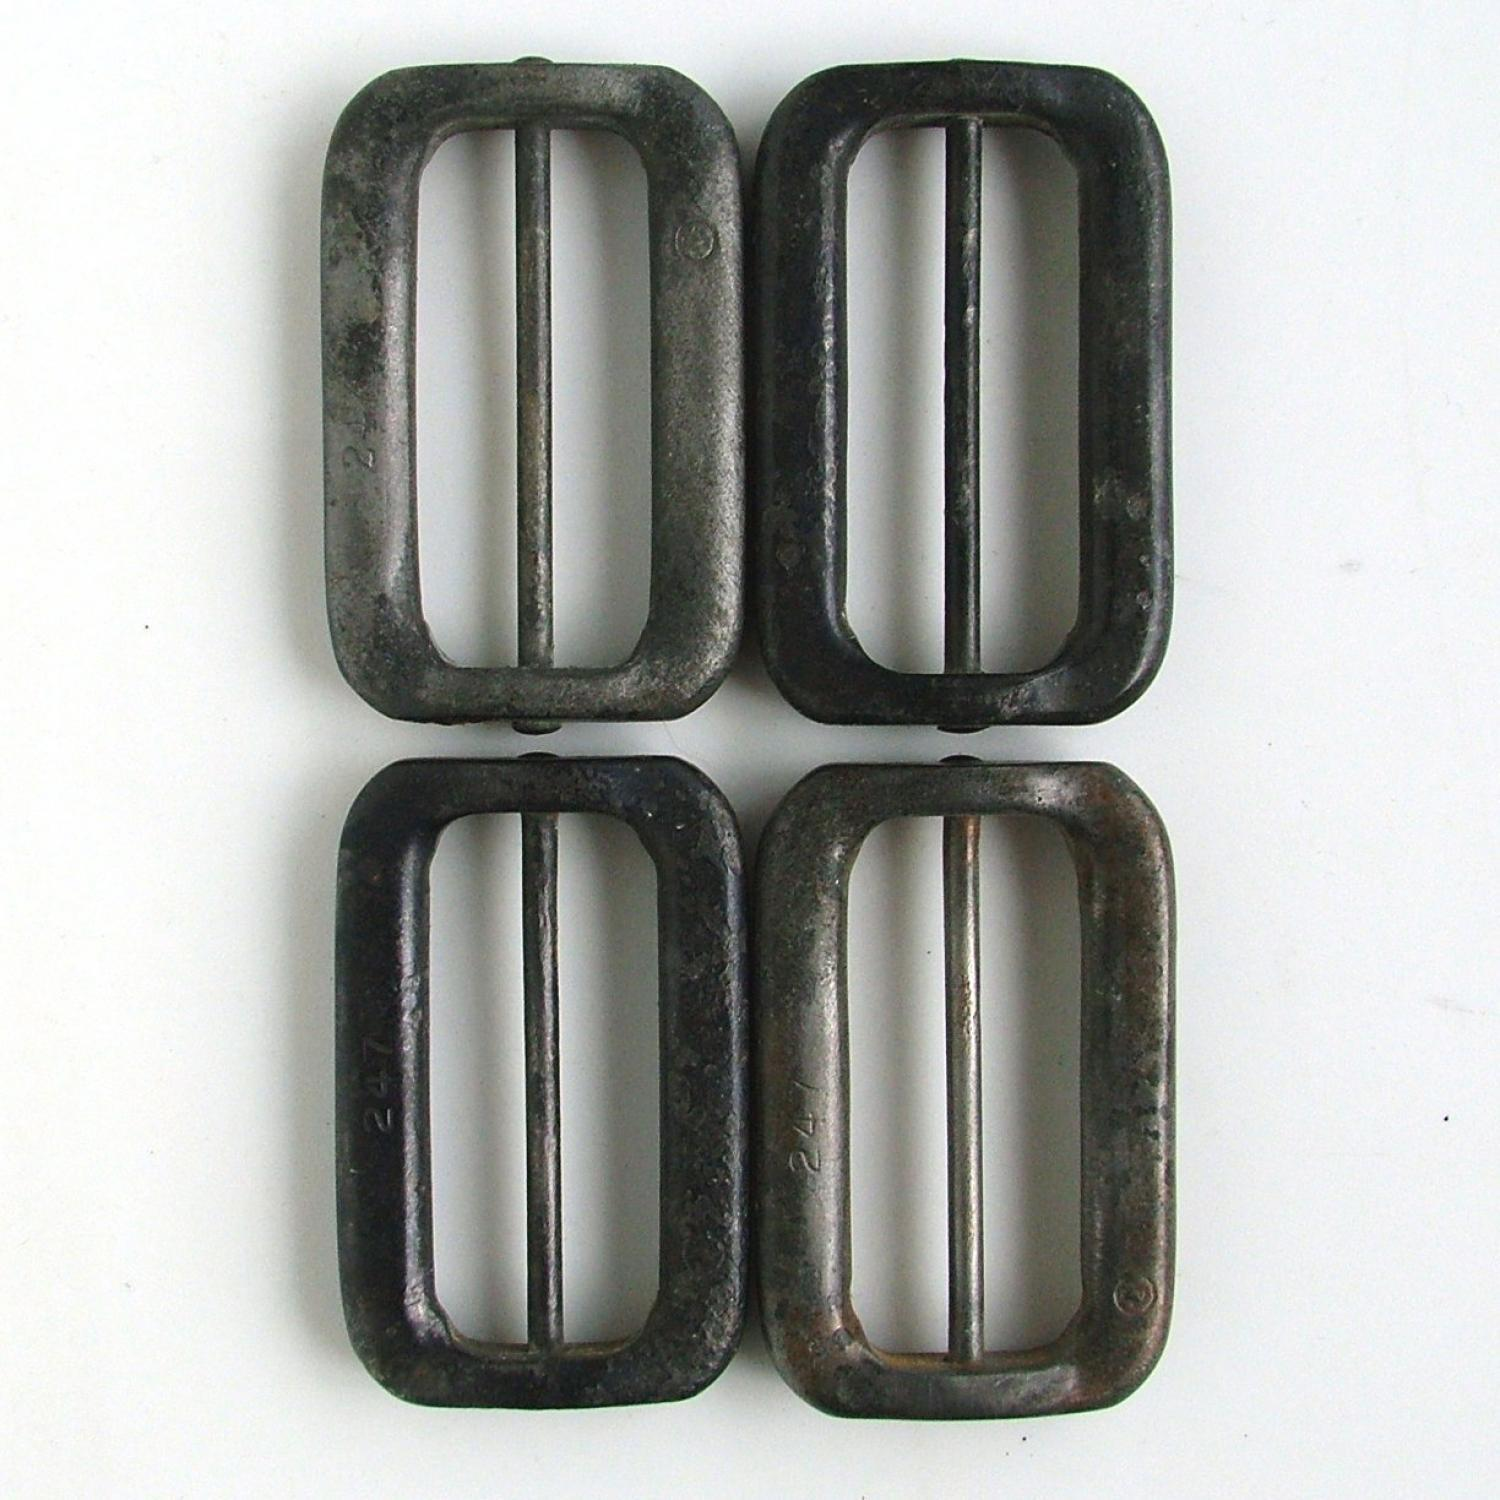 RAF Parachute Harness Buckles